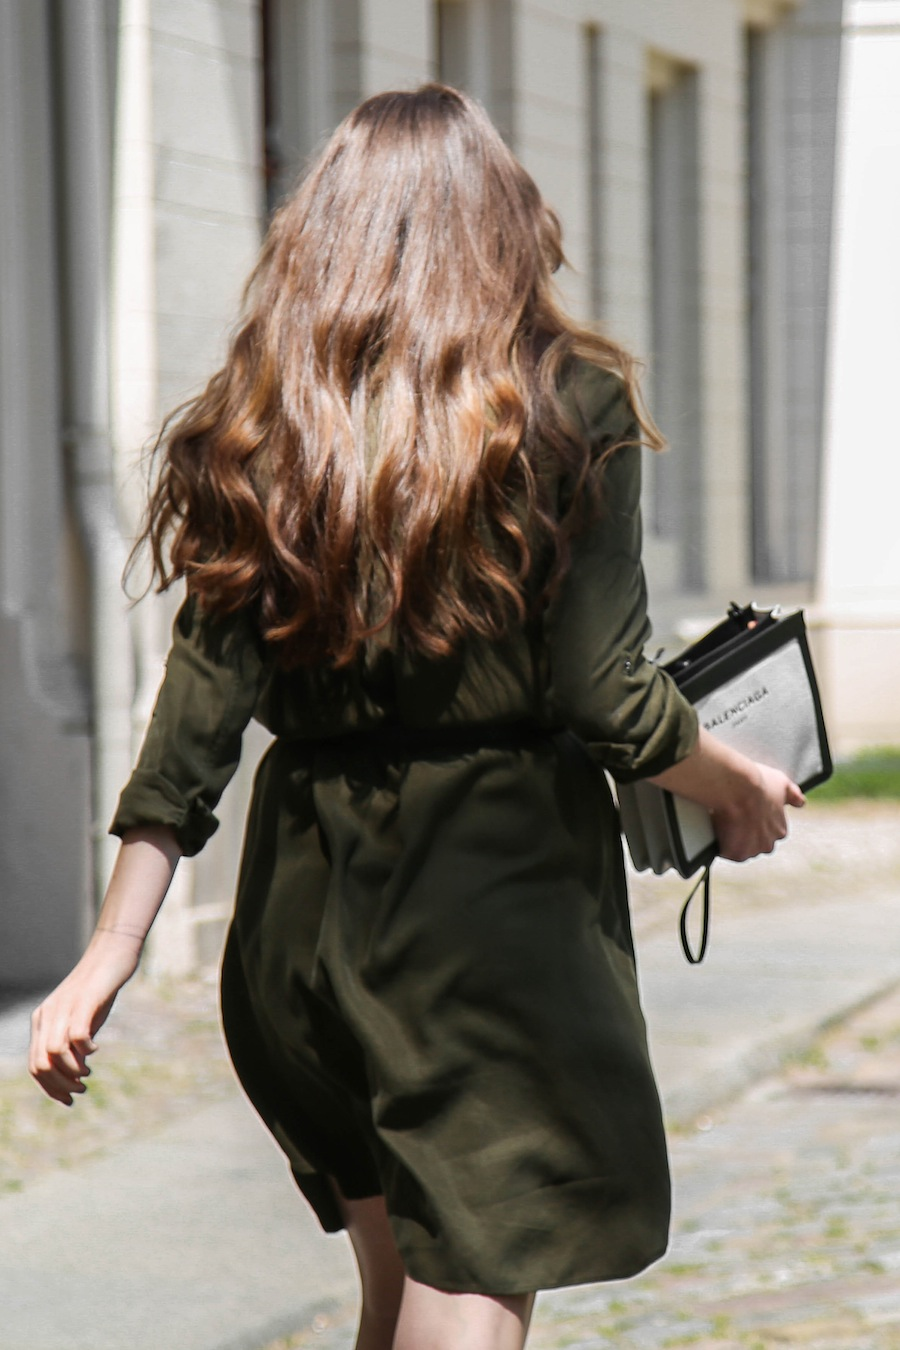 ari_traegt_khaki_dress_balenciaga_canvas_bag